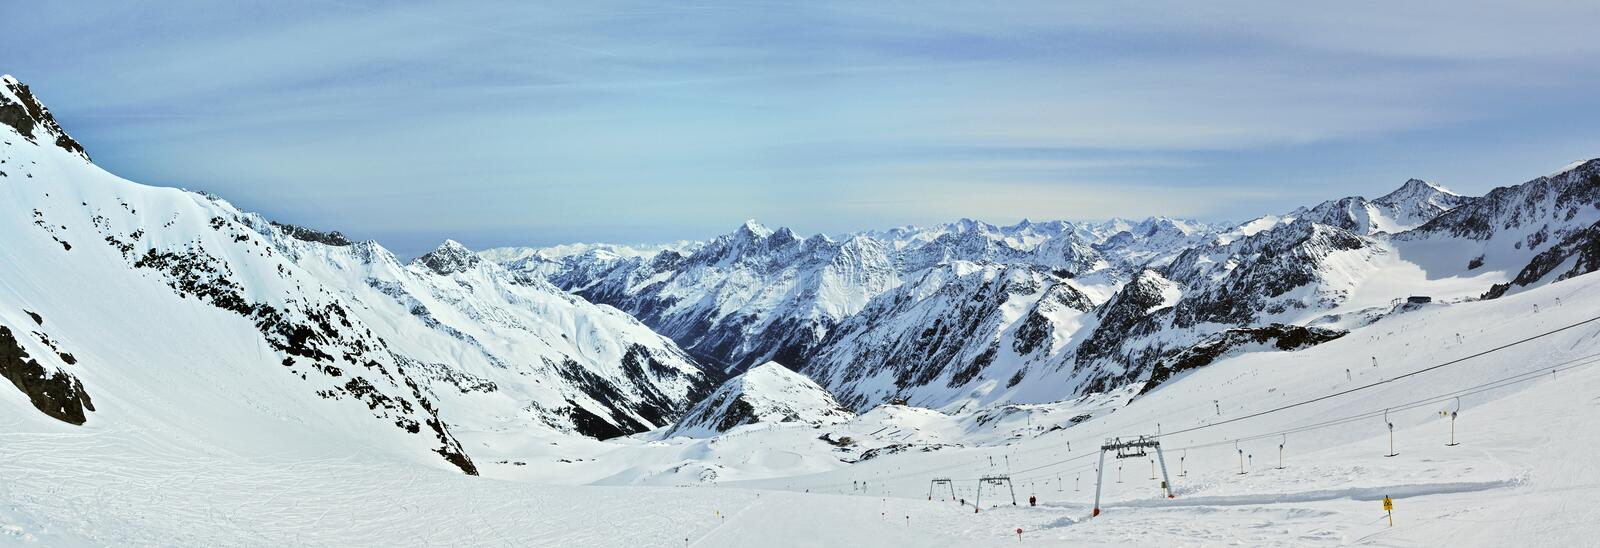 Stubai Ski Resort Royalty Free Stock Images